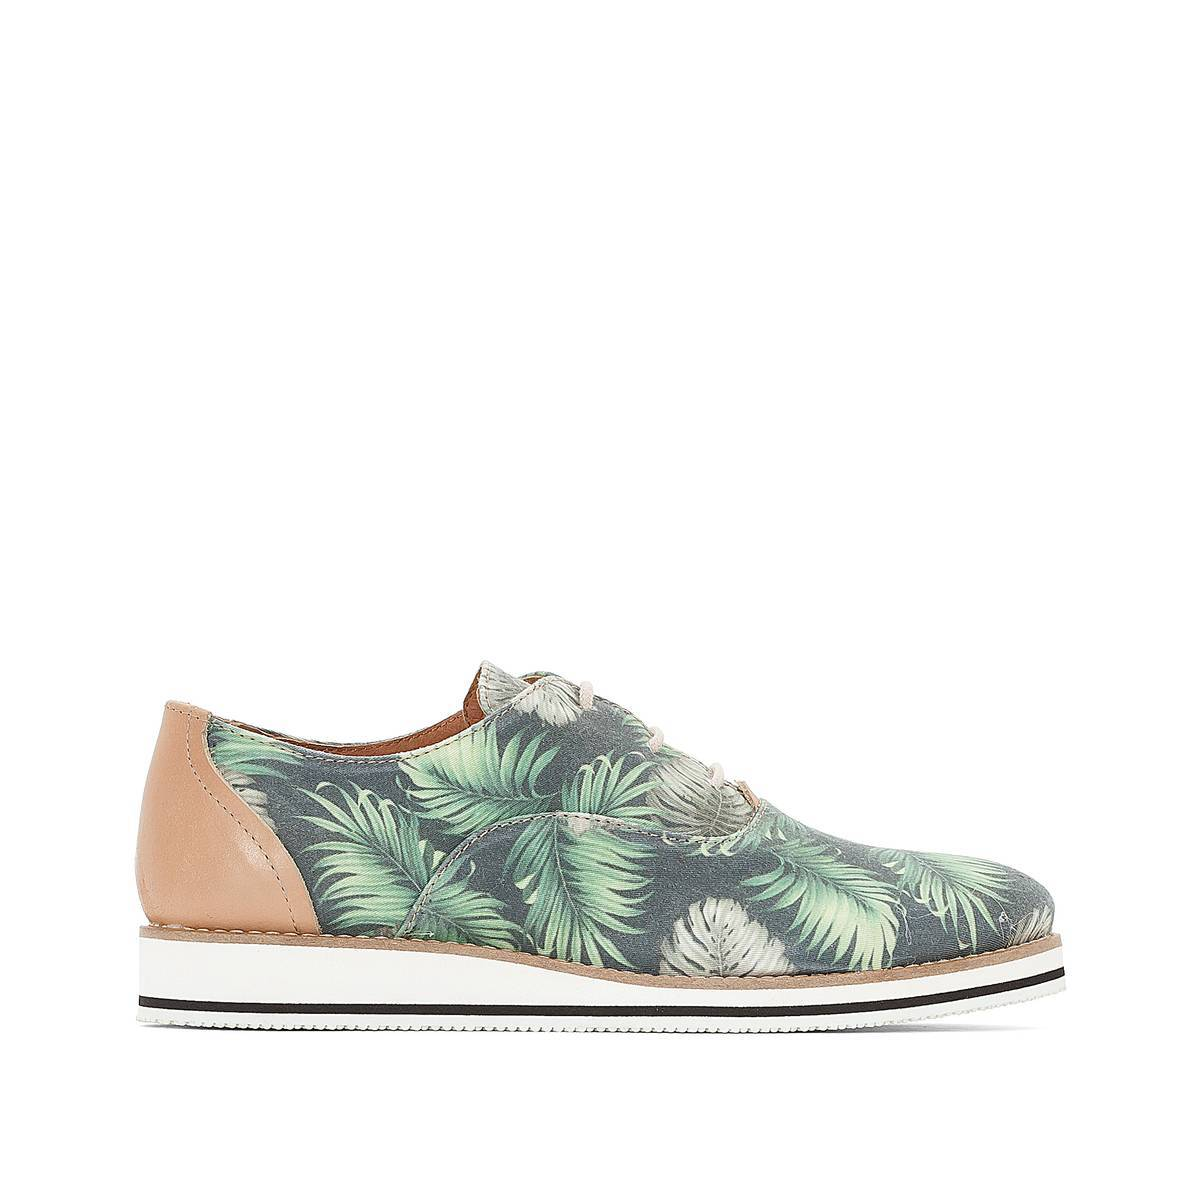 La Redoute Collections Zapatos derbies con estampado tropical azul